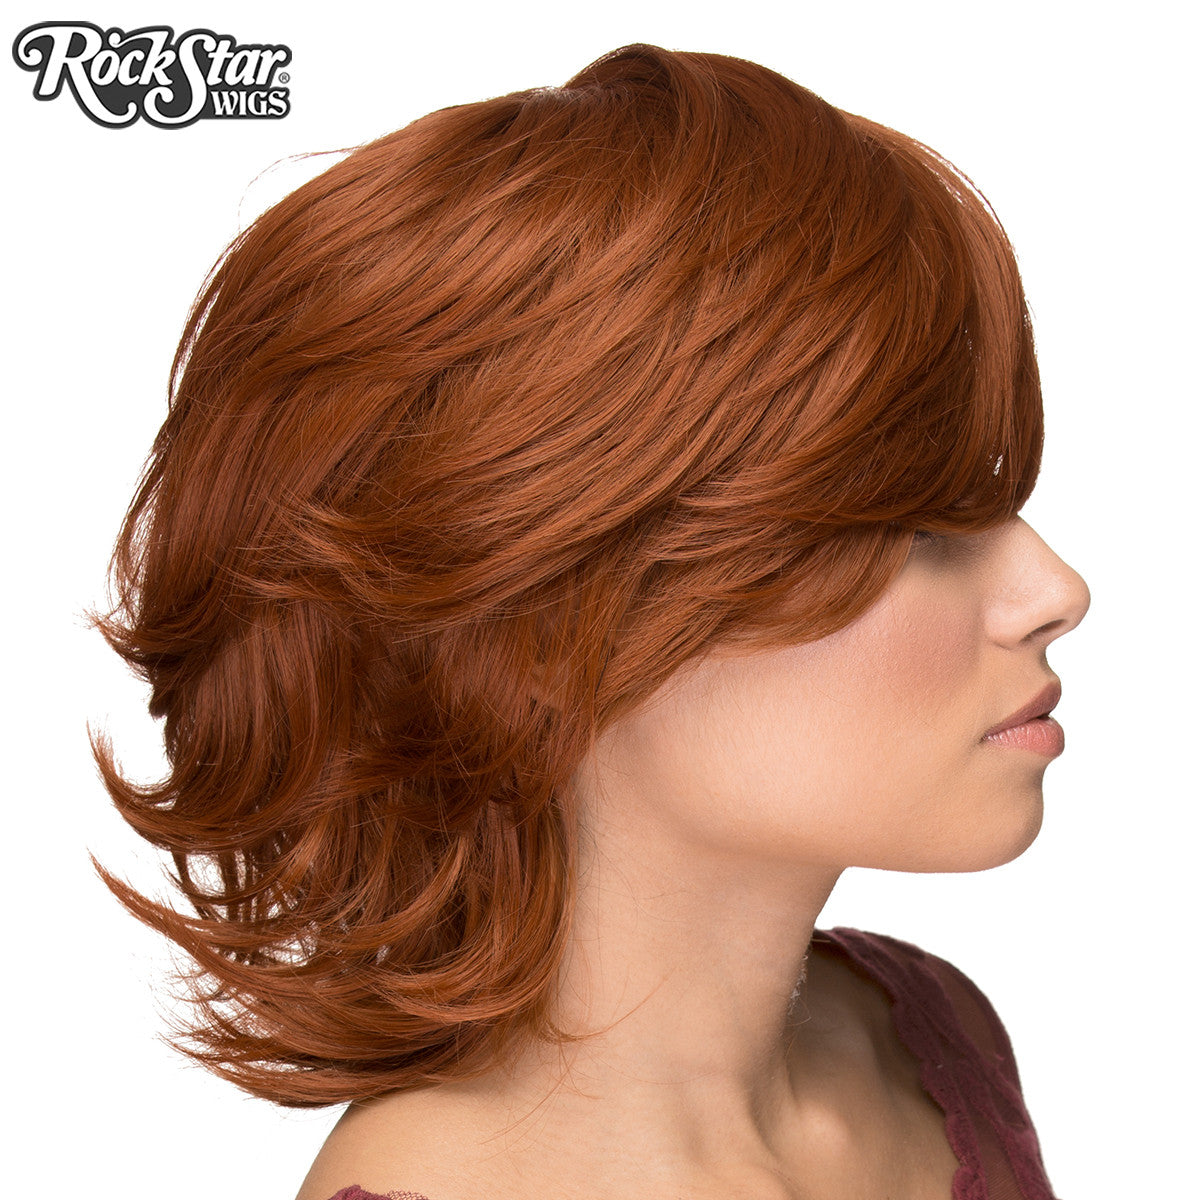 Cosplay Wigs USA™ <br> Boy Cut Short Shag - Auburn -00523